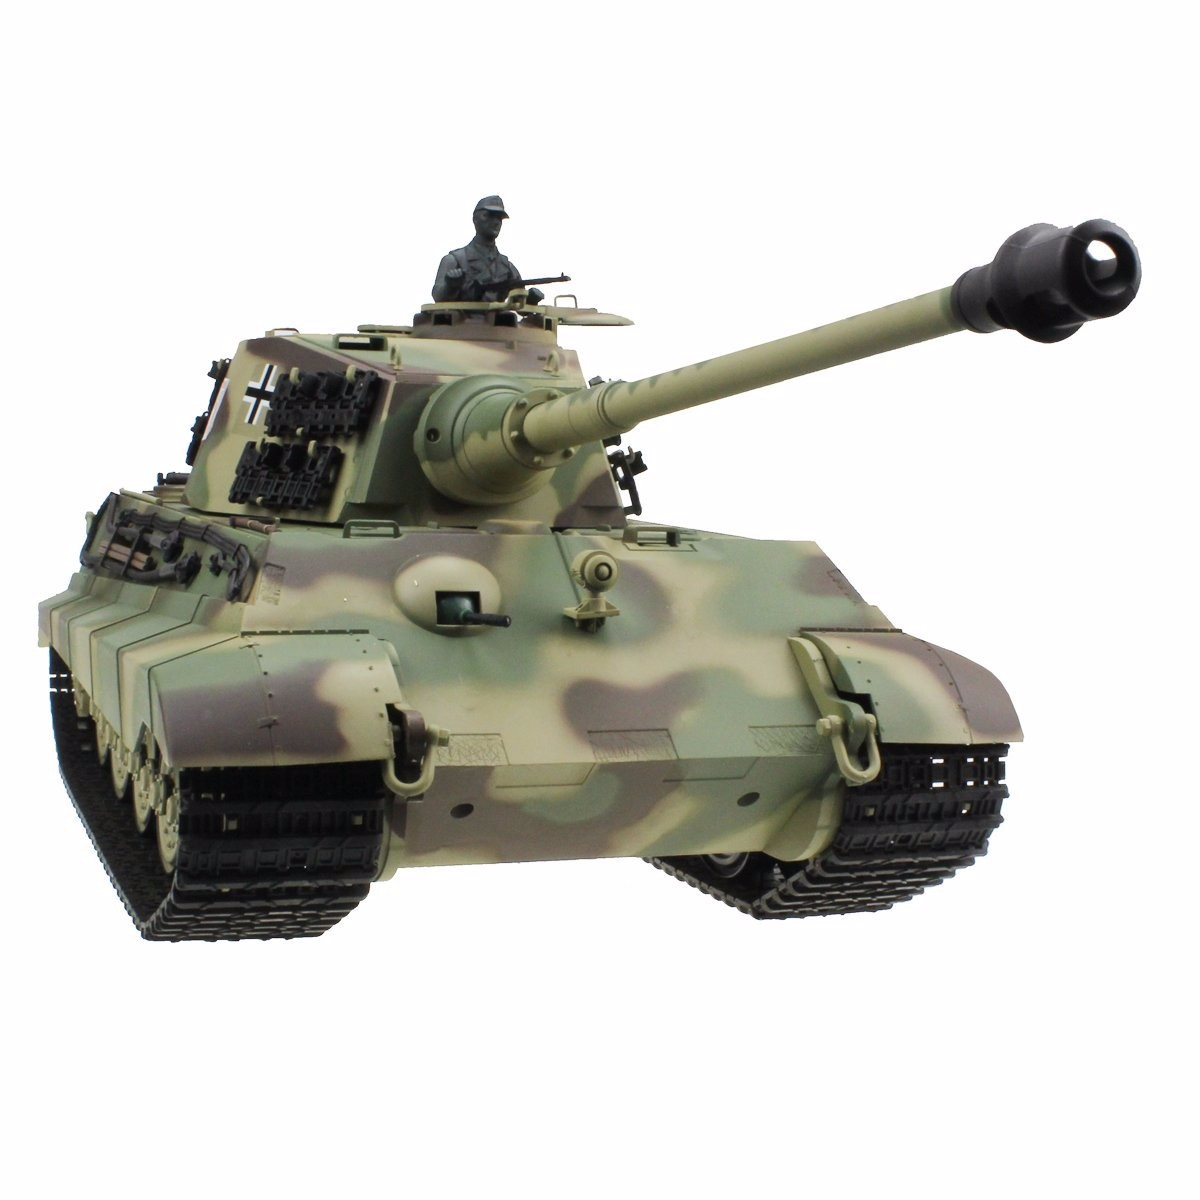 2.4Ghz Radio Control 1/16 King Tiger (Henschel Turret) Air Soft RC Battle Tank w/Sound & Smoke RC RTR